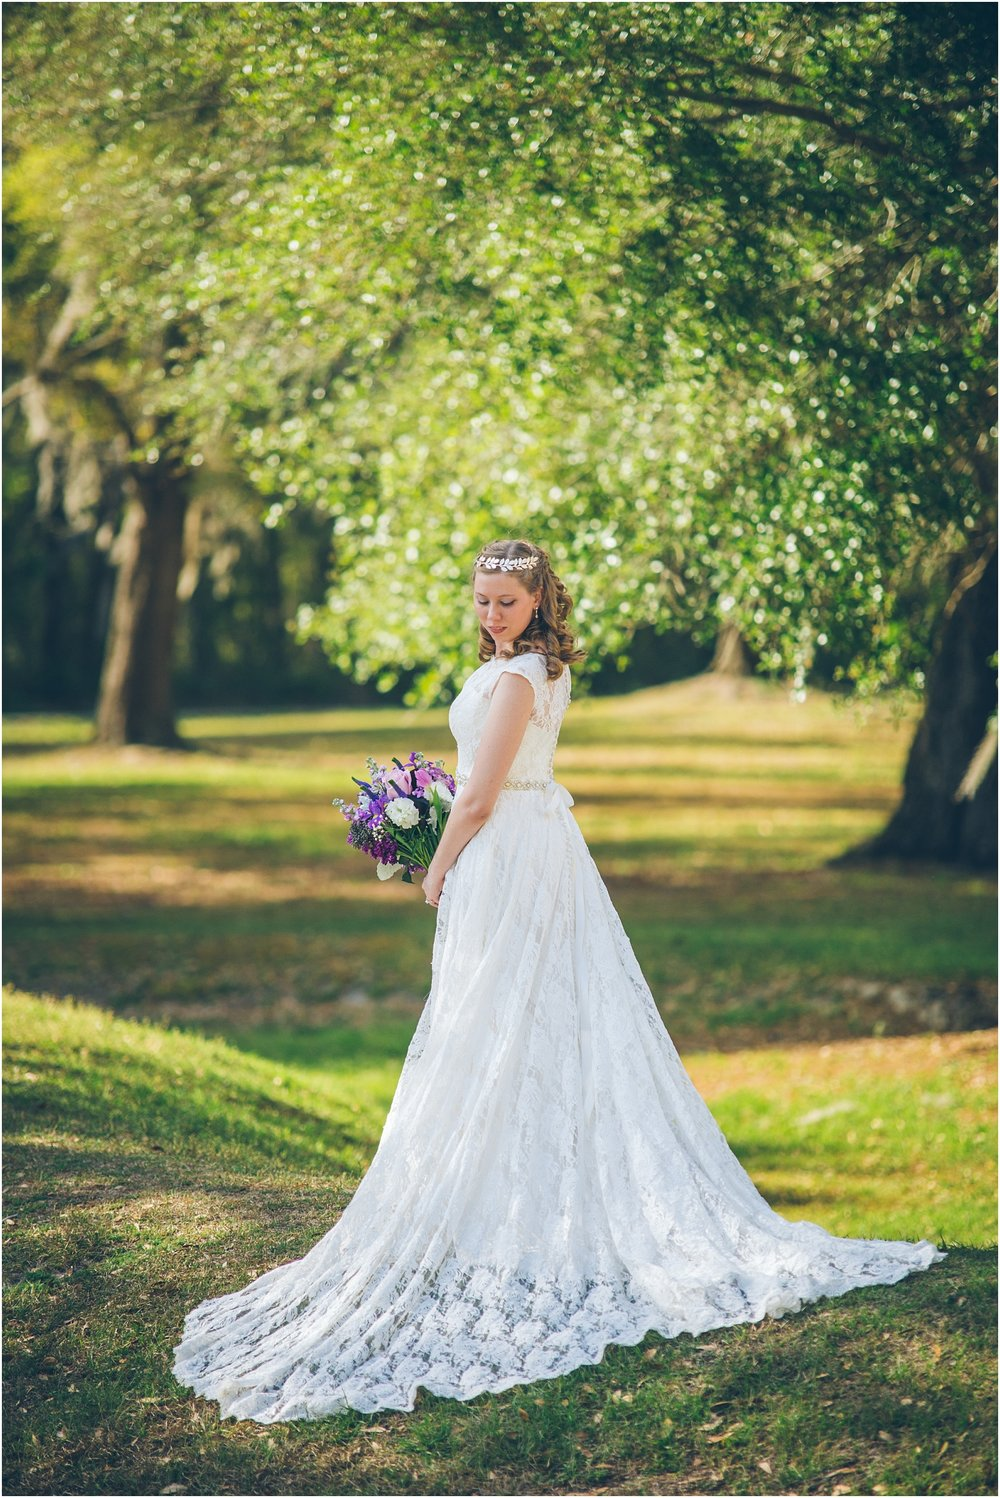 Those purple flowers tho! and that stunning Justin Alexander Dress!